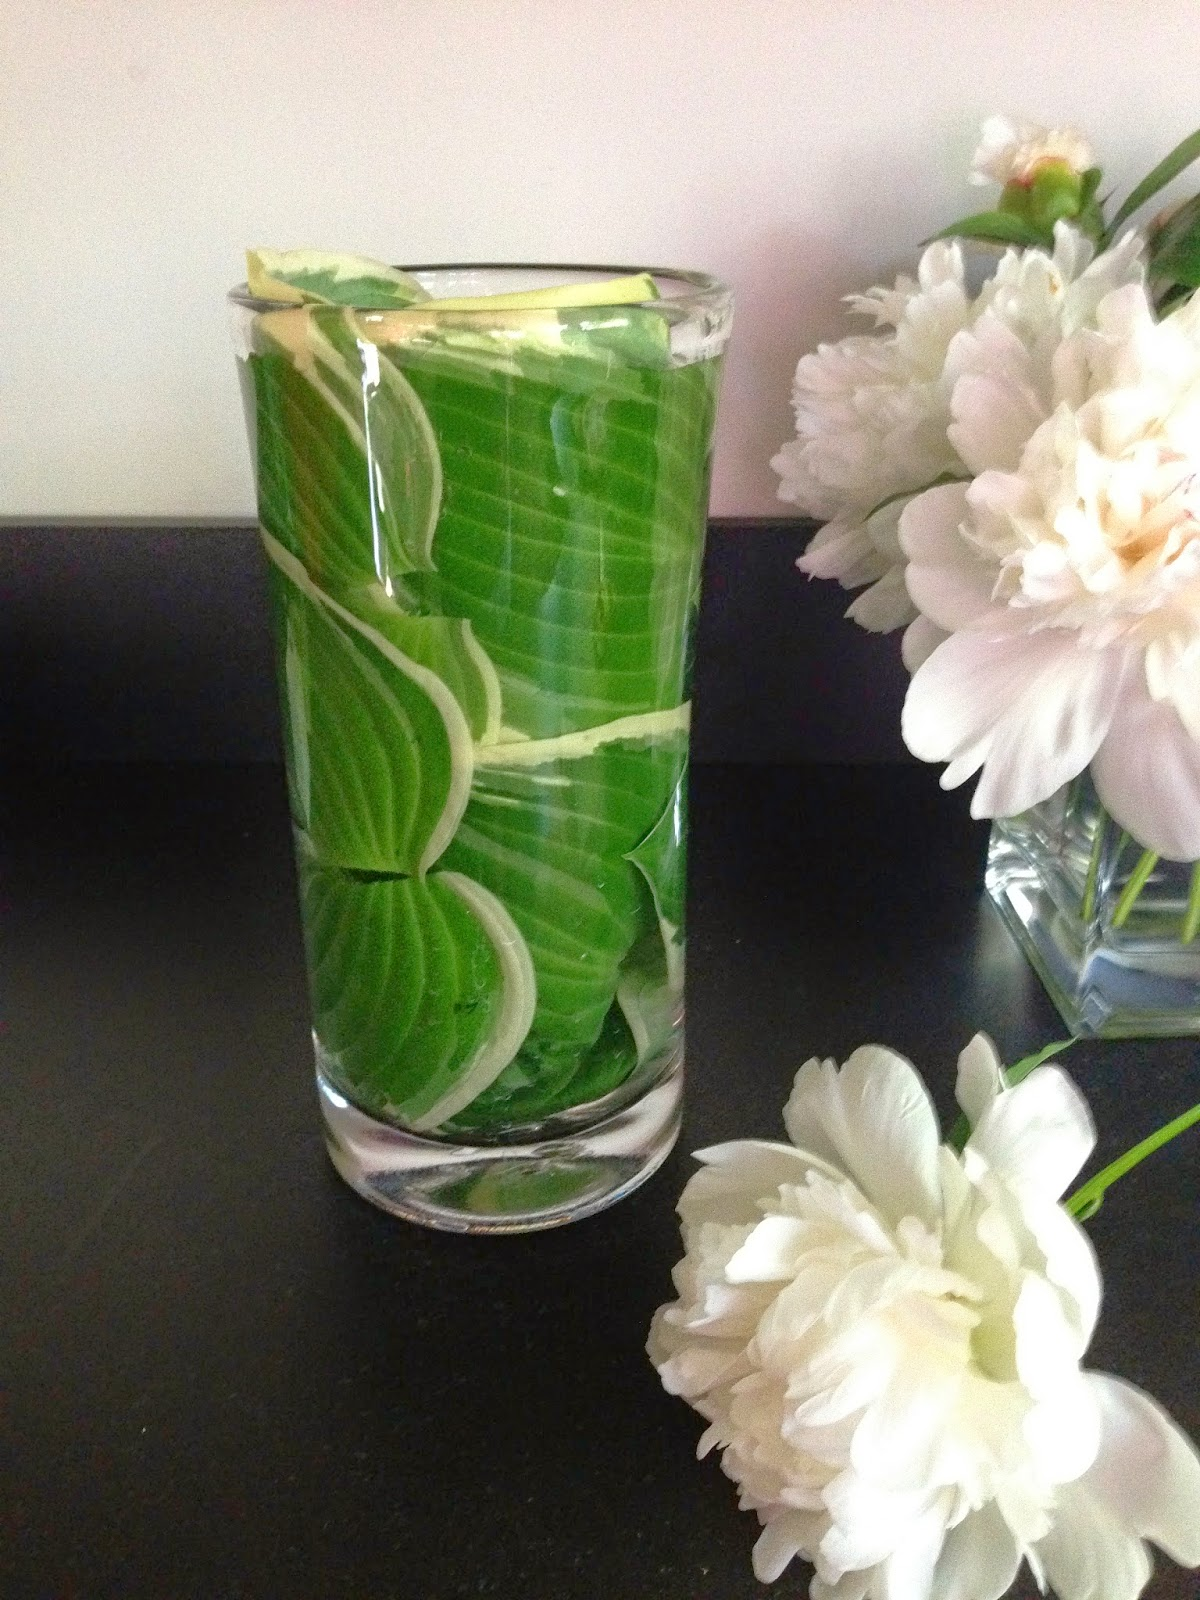 Bluemopheads Floral Design How To Line A Clear Vase